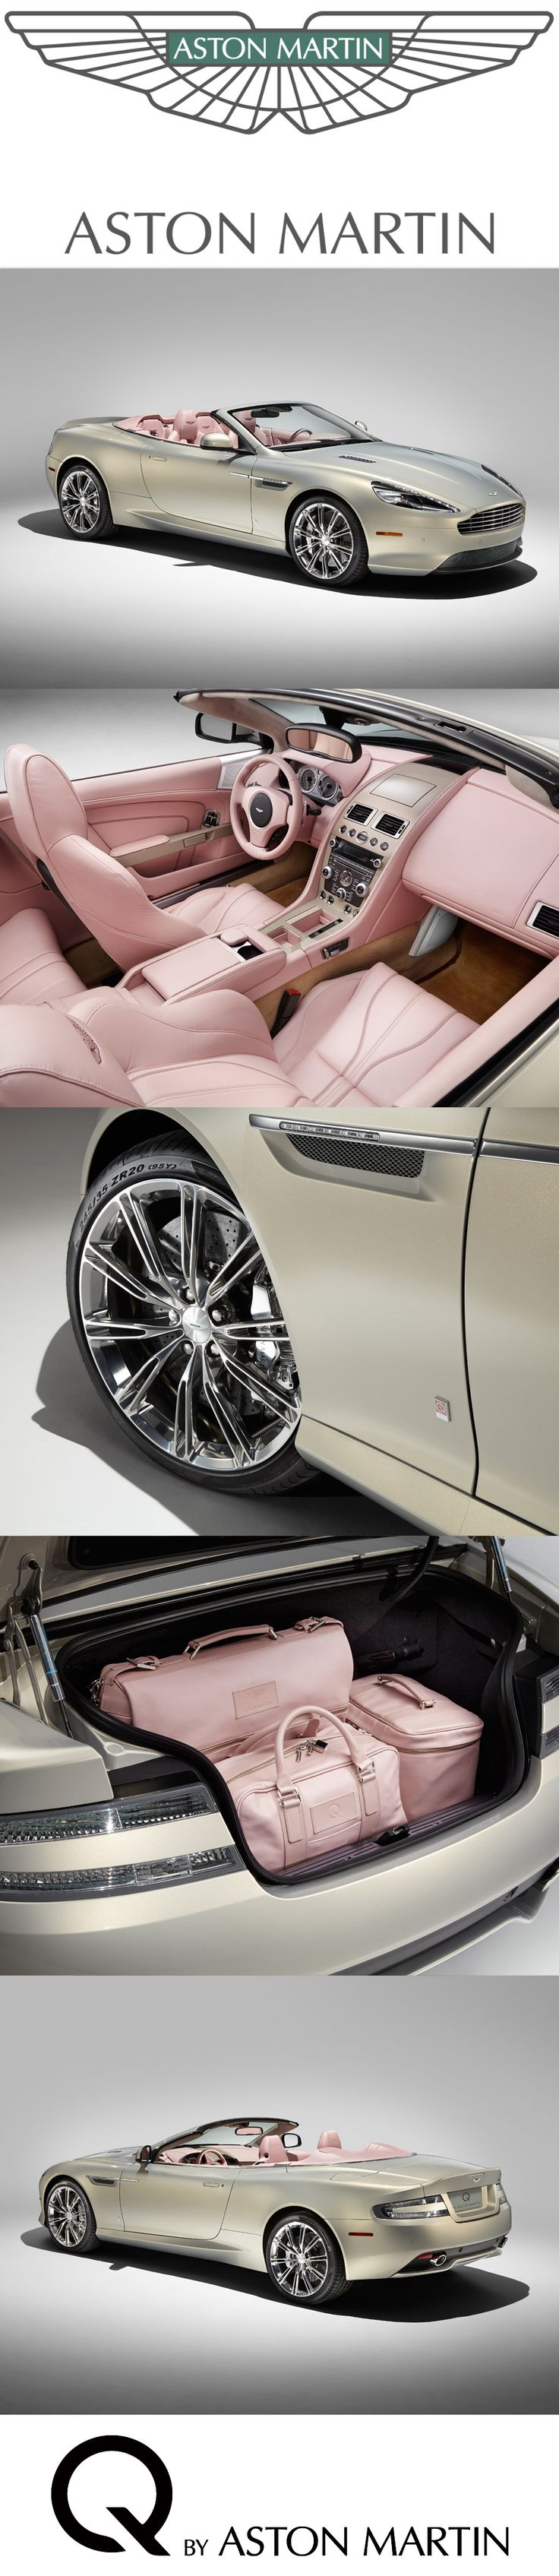 Kallistos Stelios Karalis || LUXURY Connoisseur ||  A bespoke commission to be showcased at Pebble Beach® Automotive Week 2014. This luxurious Q DB9 Volante is inspired by fashion and given a distinct character by its special blush pearl leather interior paired with a coolness of Piano Ice Mocha seen on full waterfall with matching door grabs. | RUSSELL & GERRI'S CARS